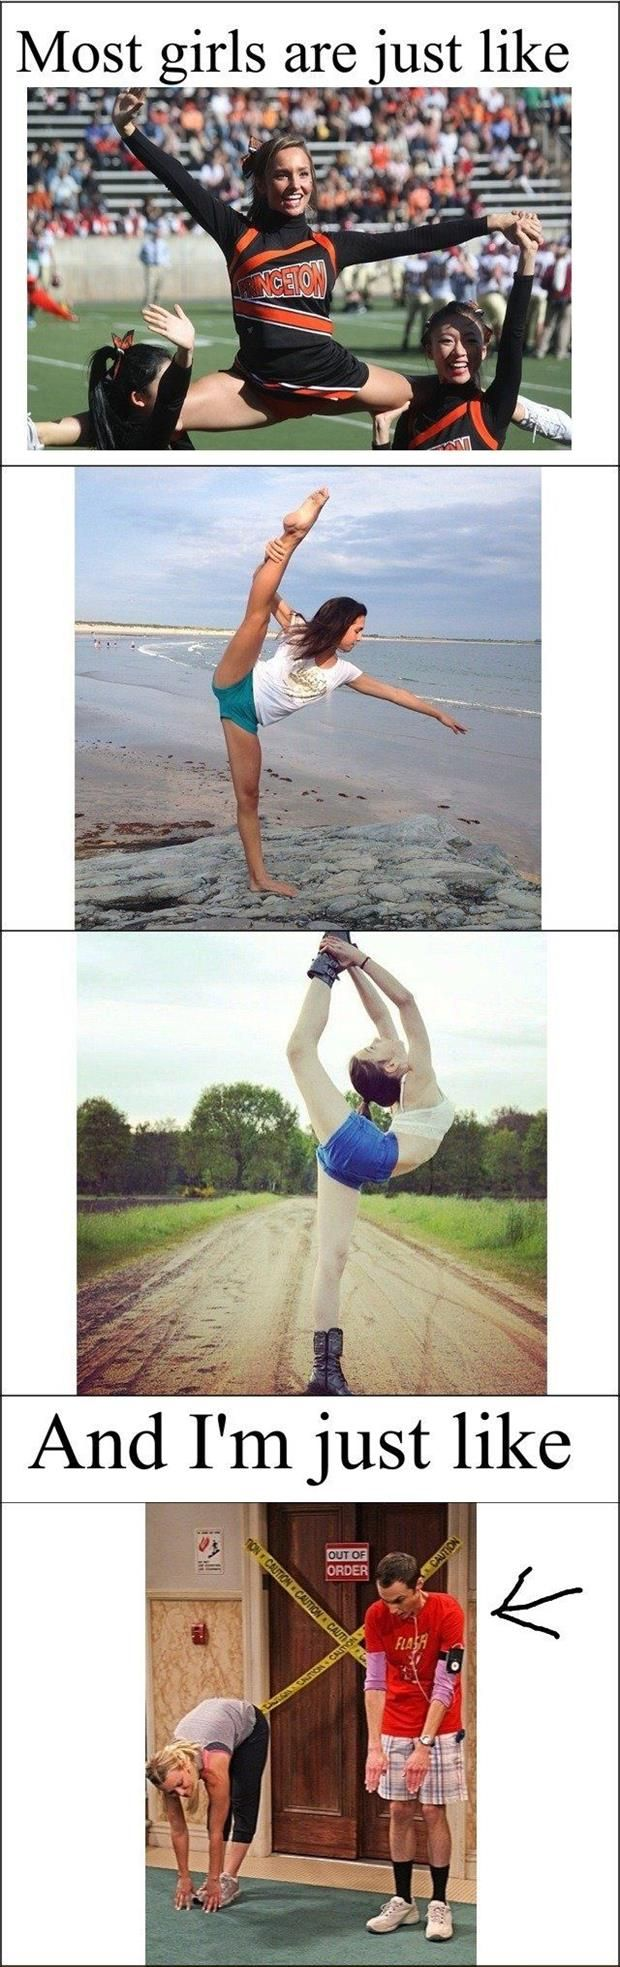 Funny Pictures Of The Day – 81 Pics #compartirvideos #funnypictures #uploadfunny: Funny Yoga Quotes, Funny True, Funny Quotes And Pictures, Funny Cheerleading Pictures, Yoga Quotes Funny, Memes Funny, Yoga Funny Quotes, Funny Pictures With Quotes